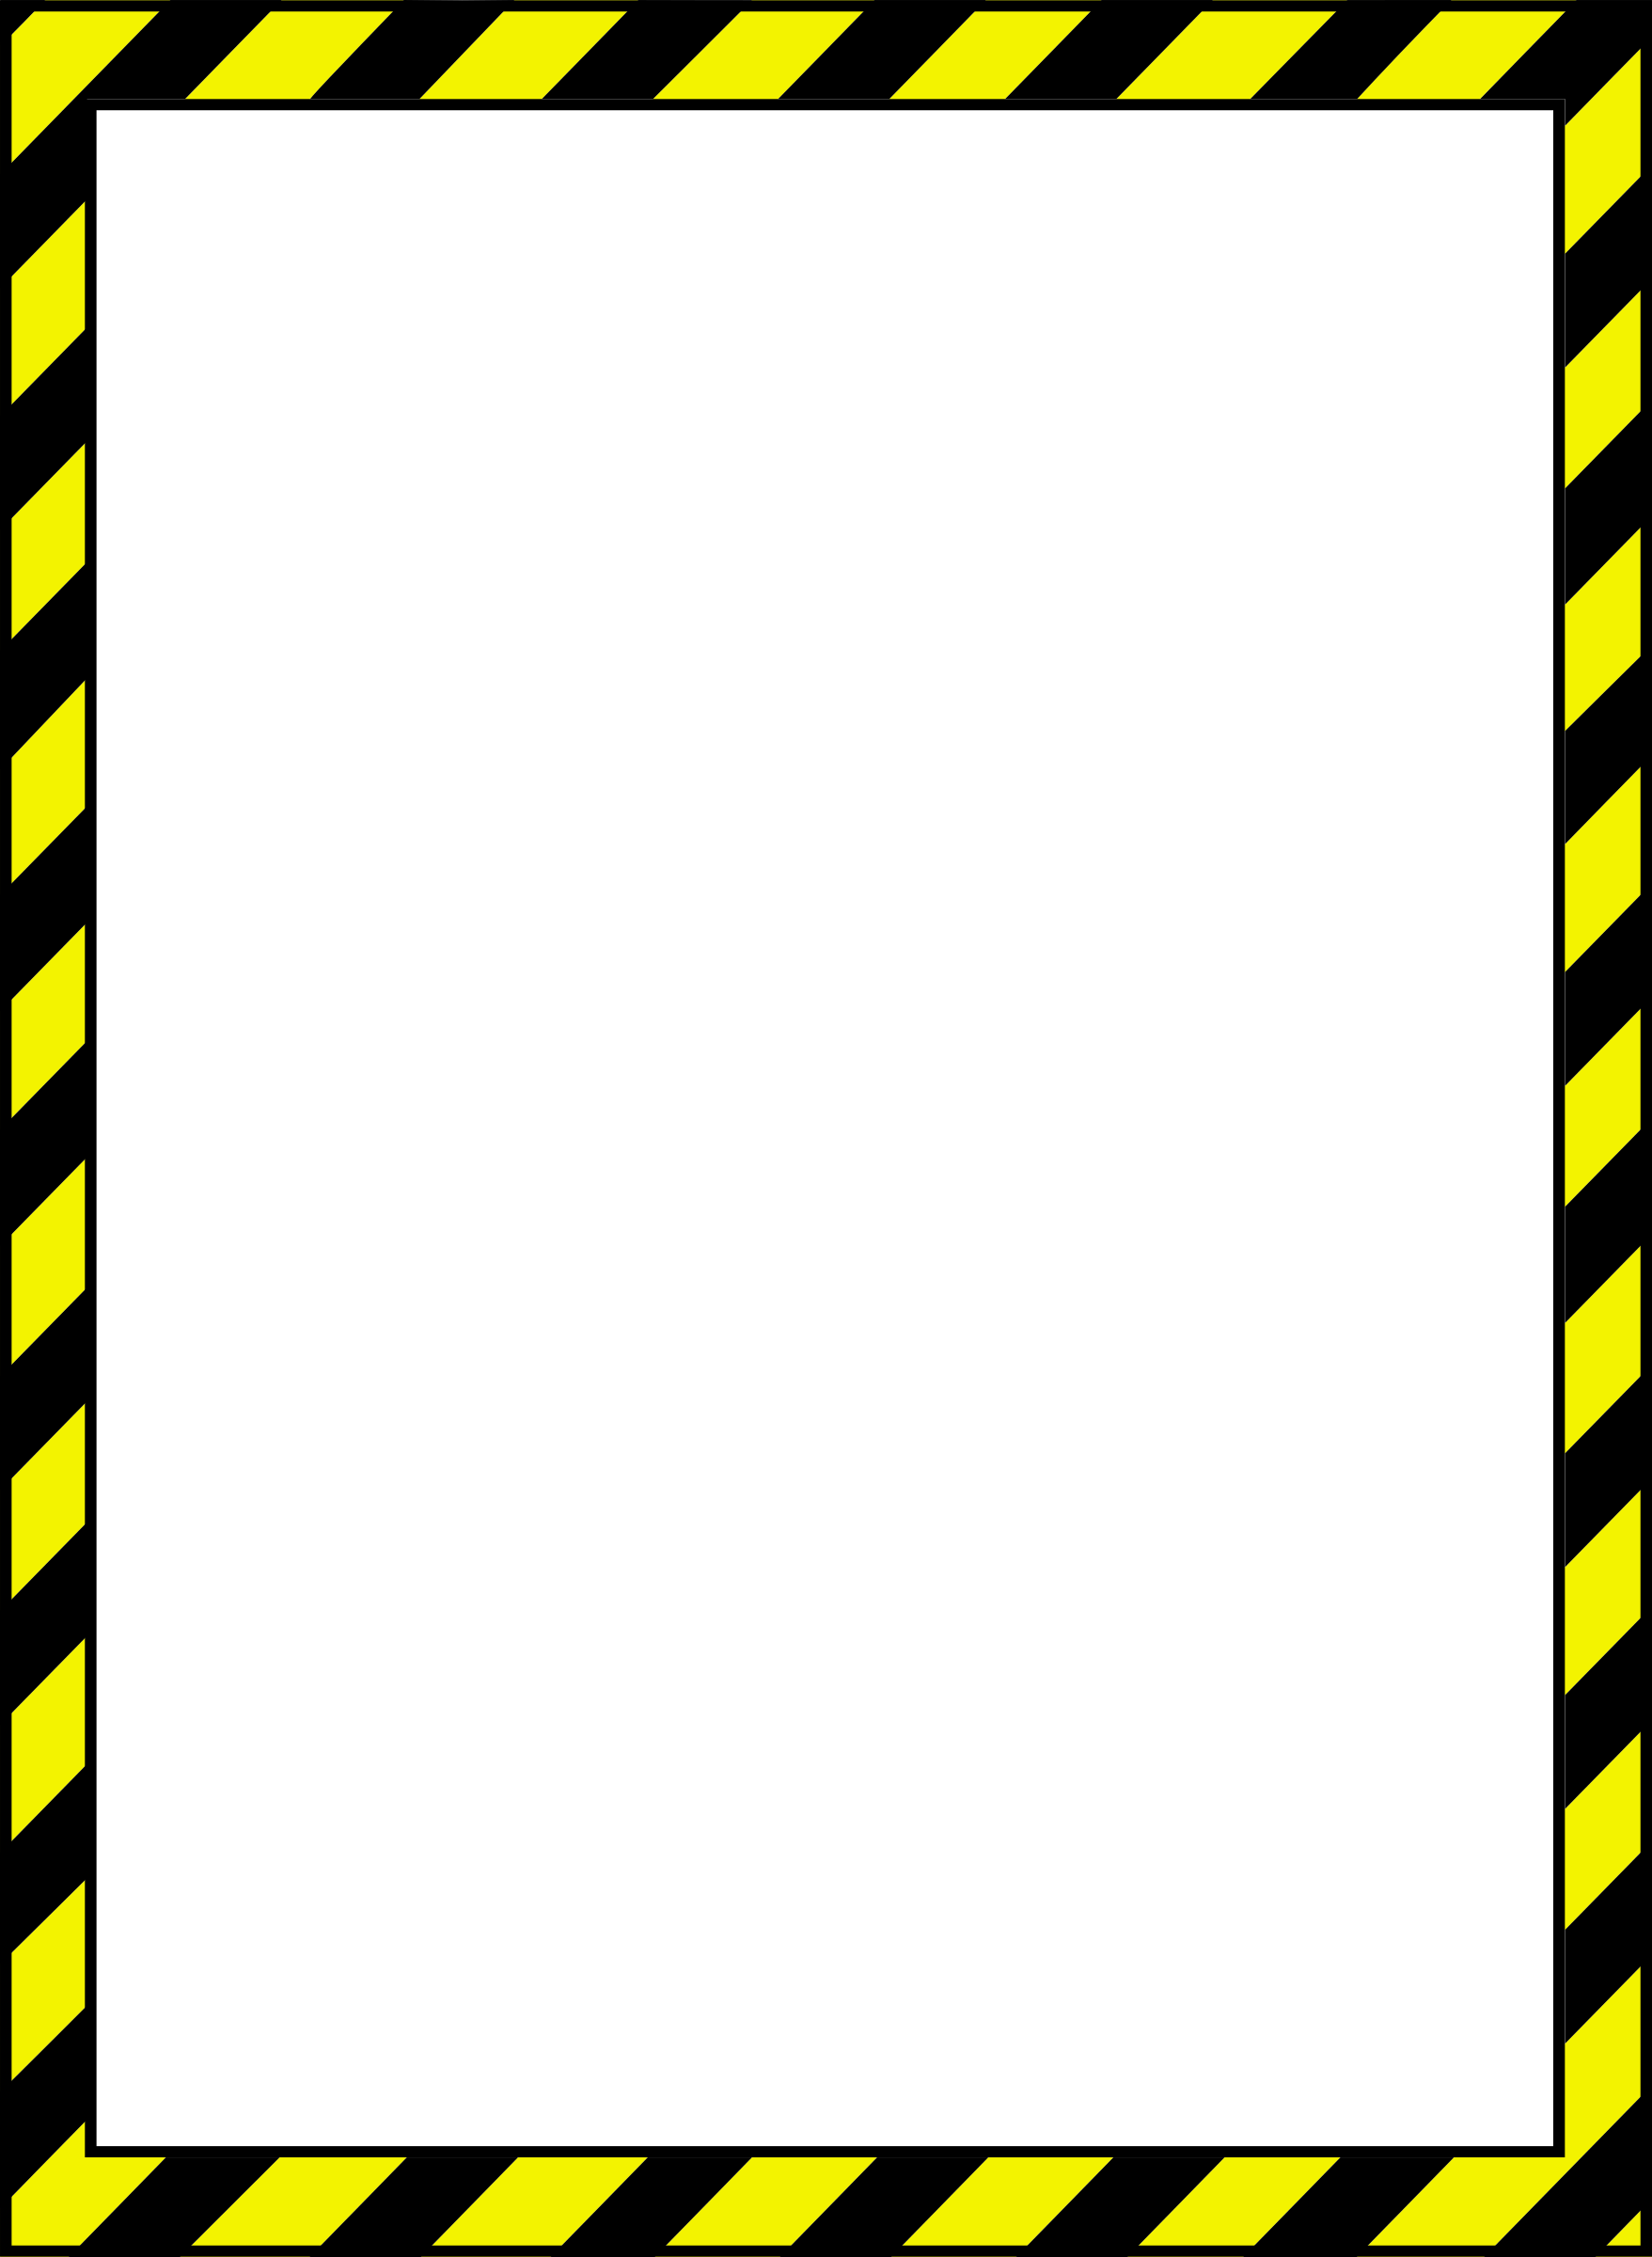 Traveling clipart border. Caution big image png